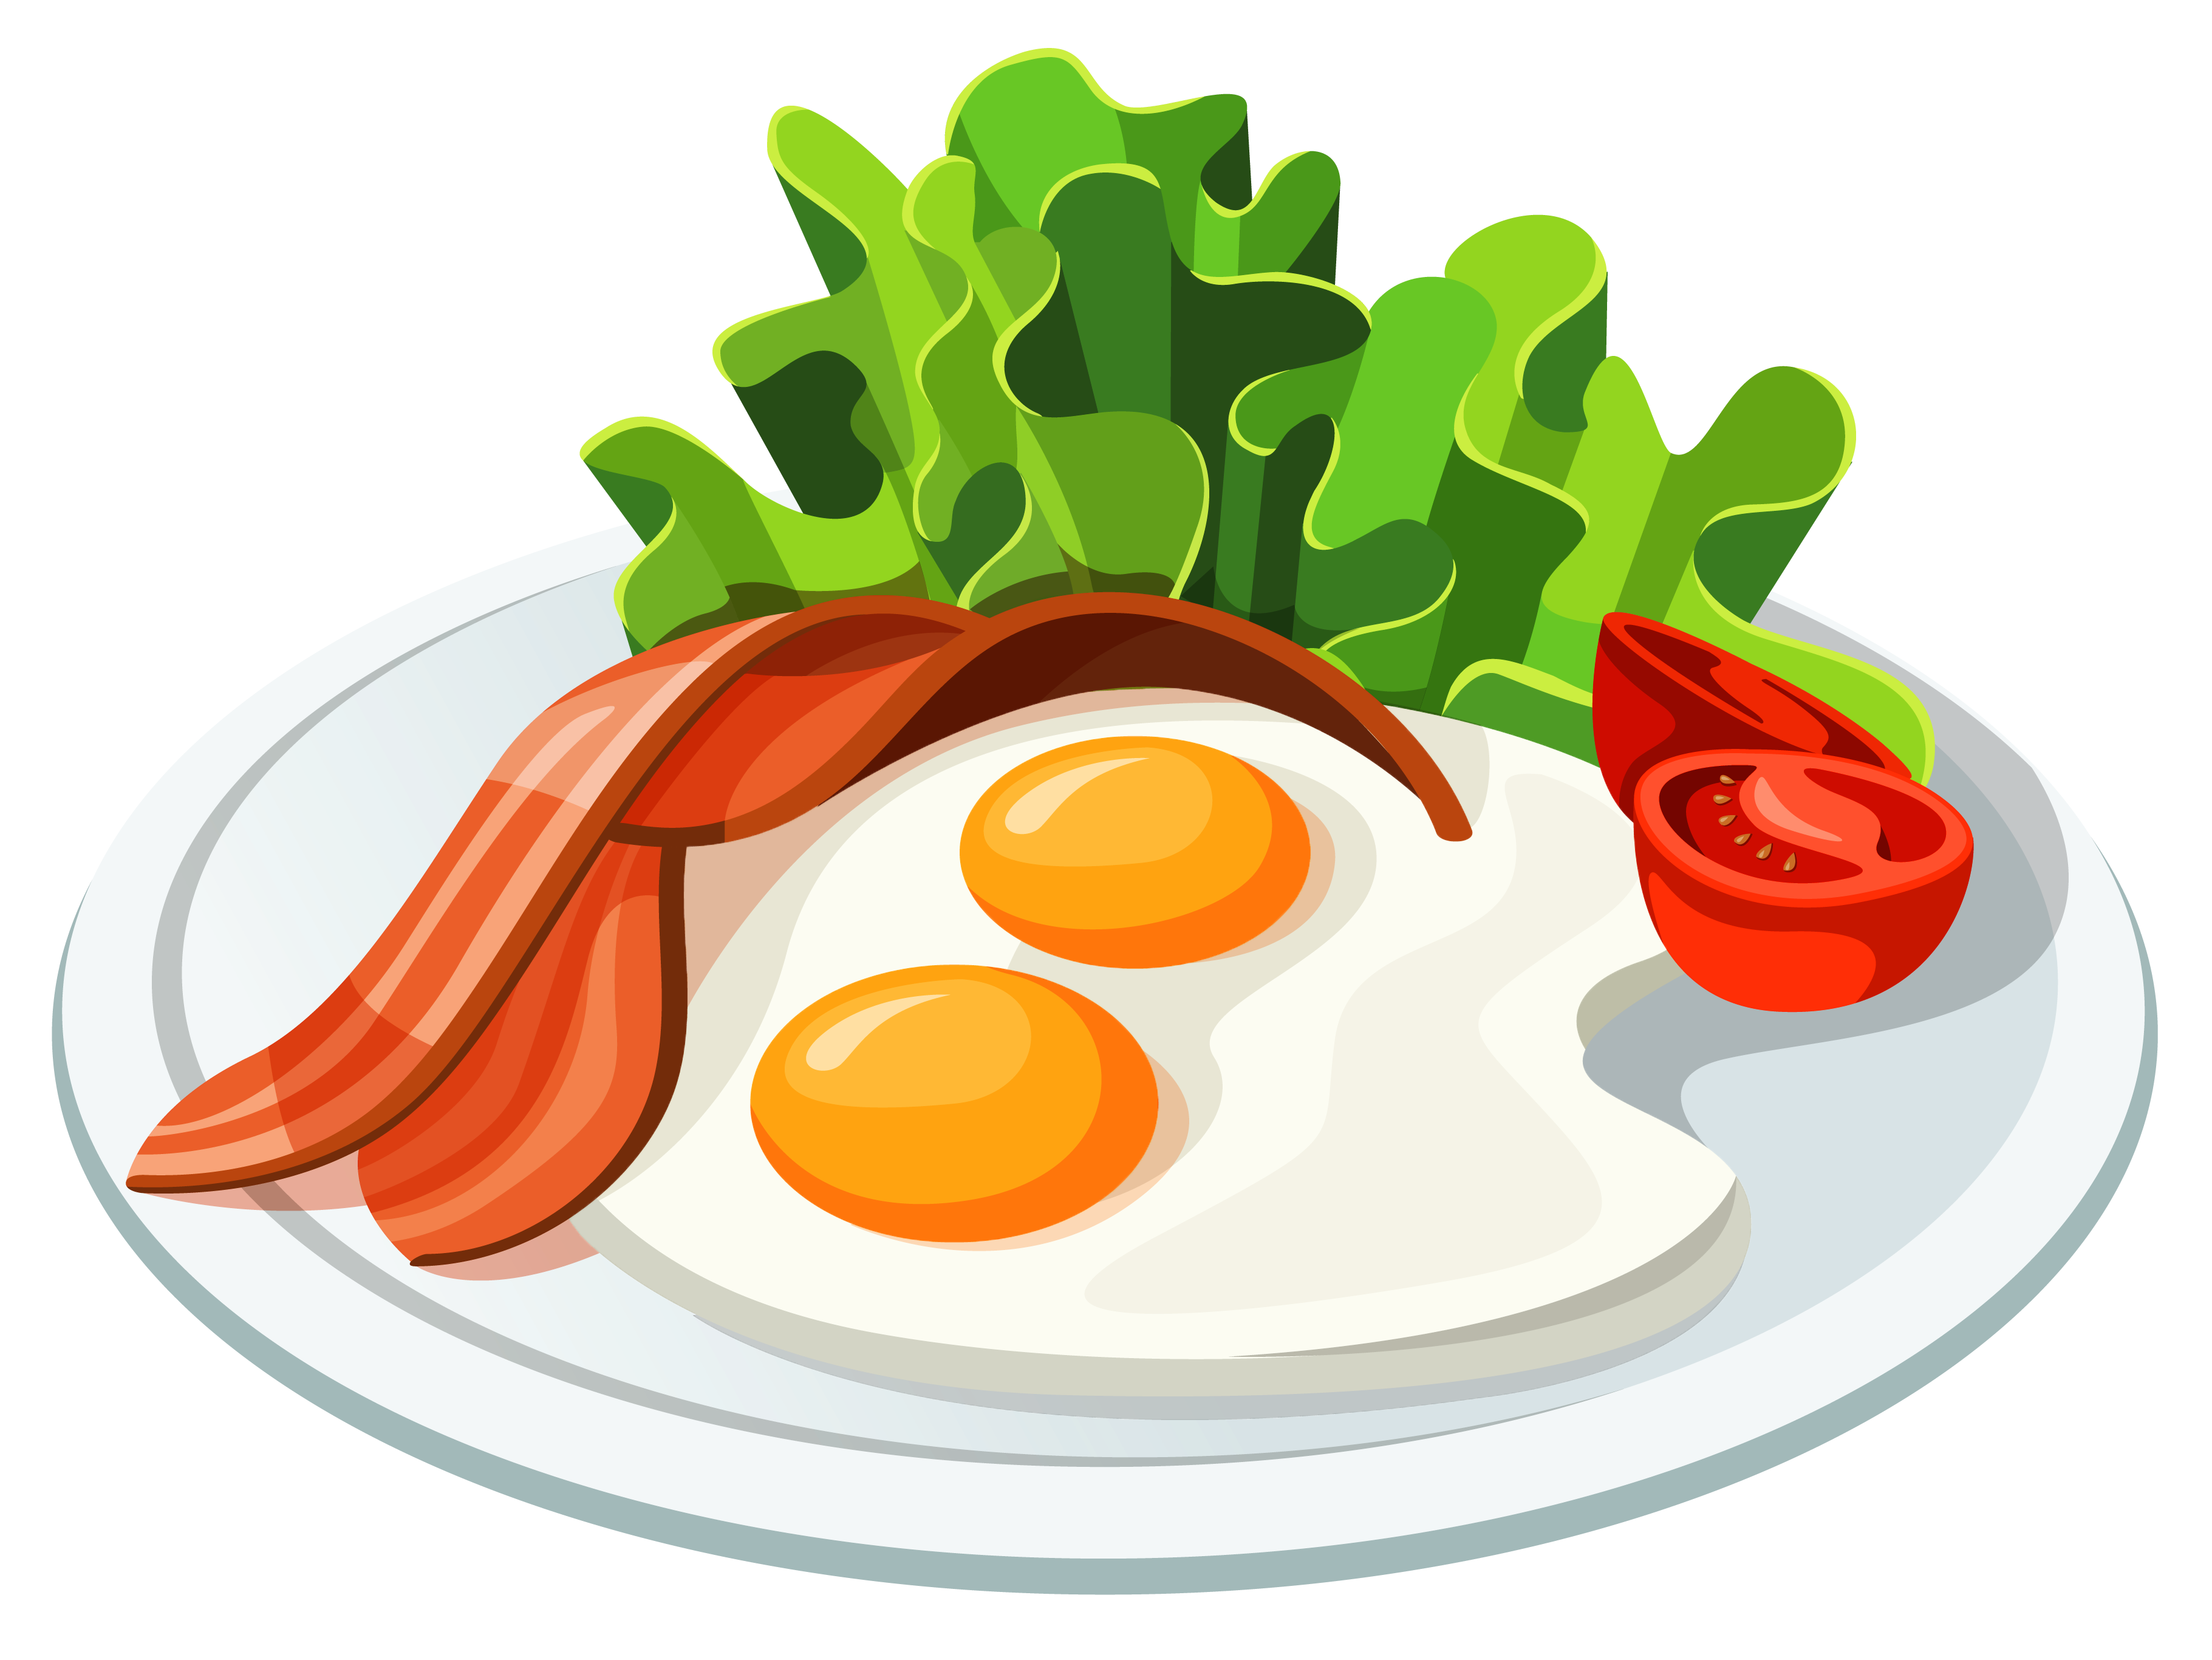 Breakfast PNG Free Download image #46652